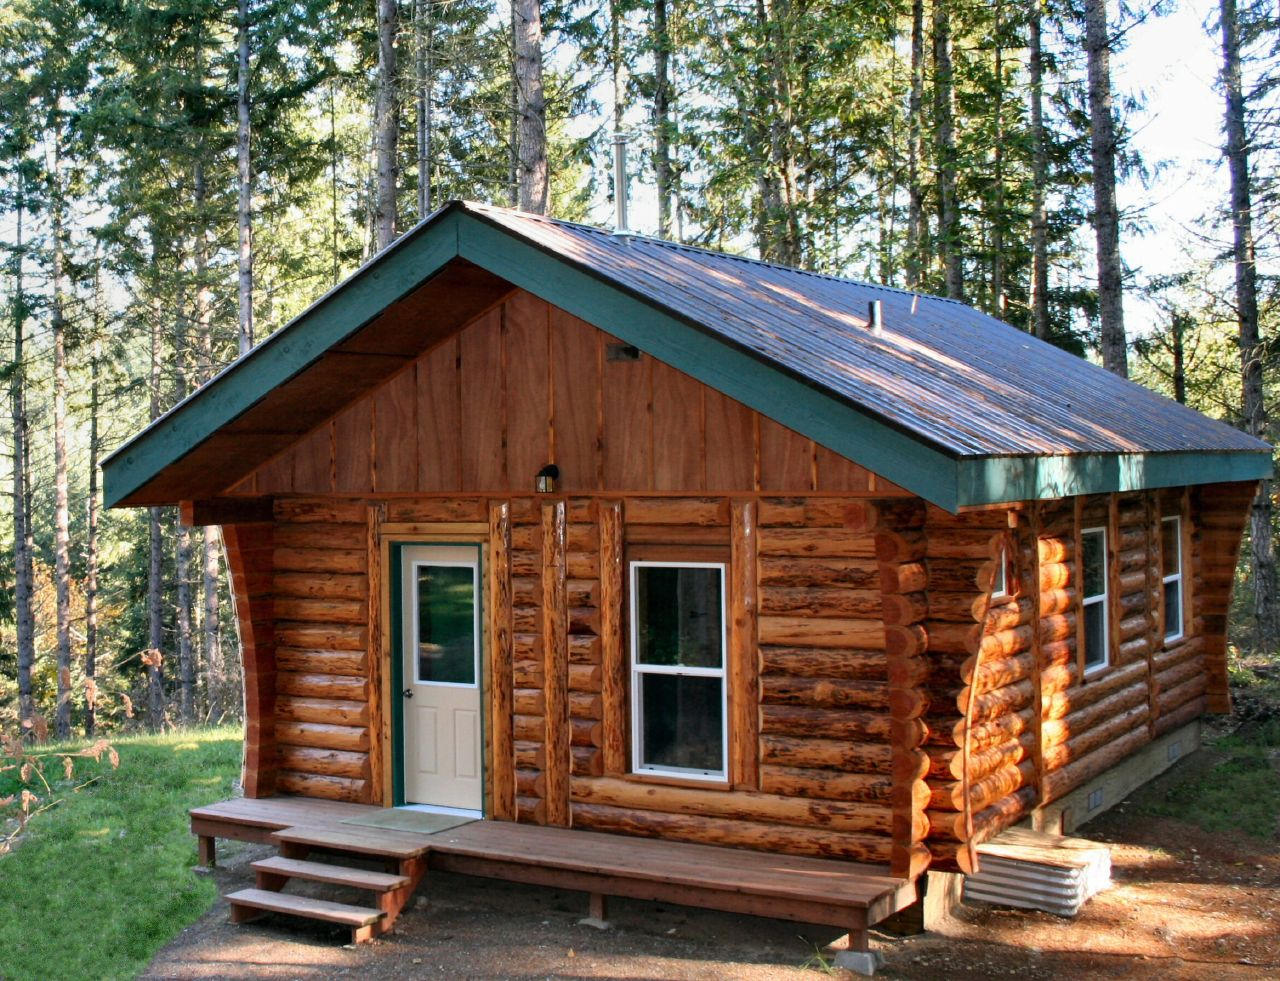 Thoughtskoto for Log cabin designs